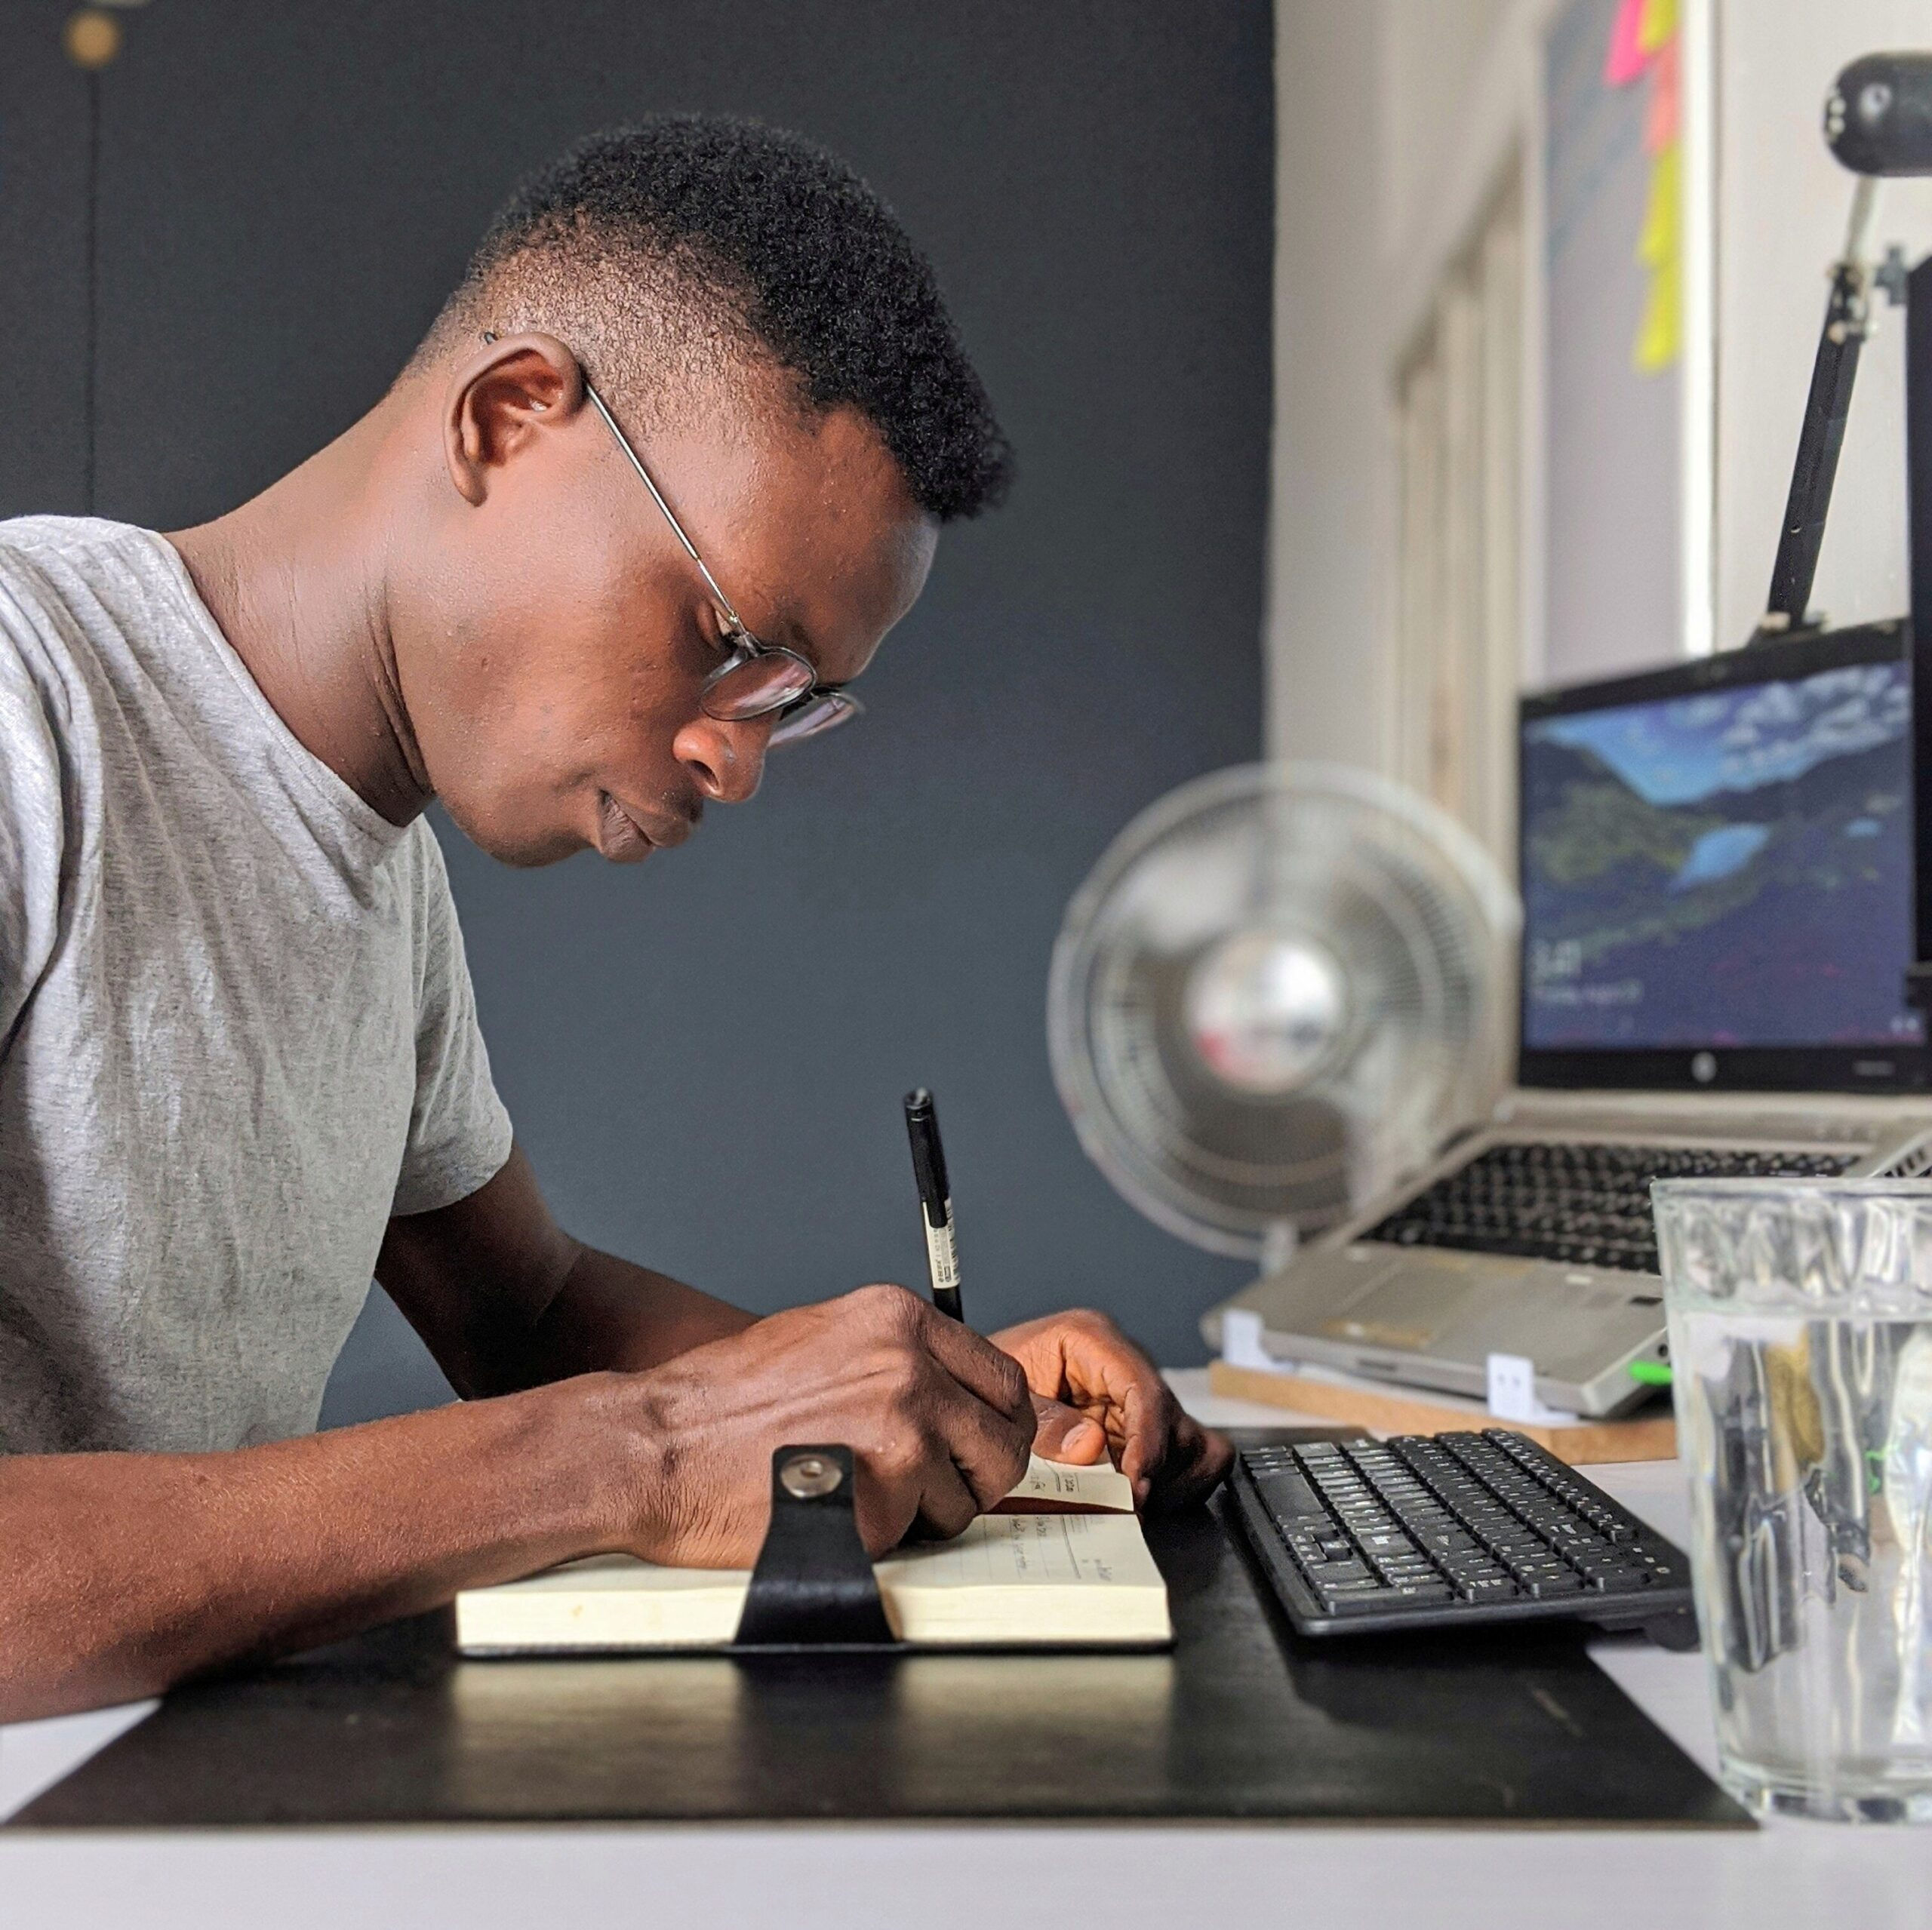 How much does a graphic designer in Kenya Earn? Young graphic designer